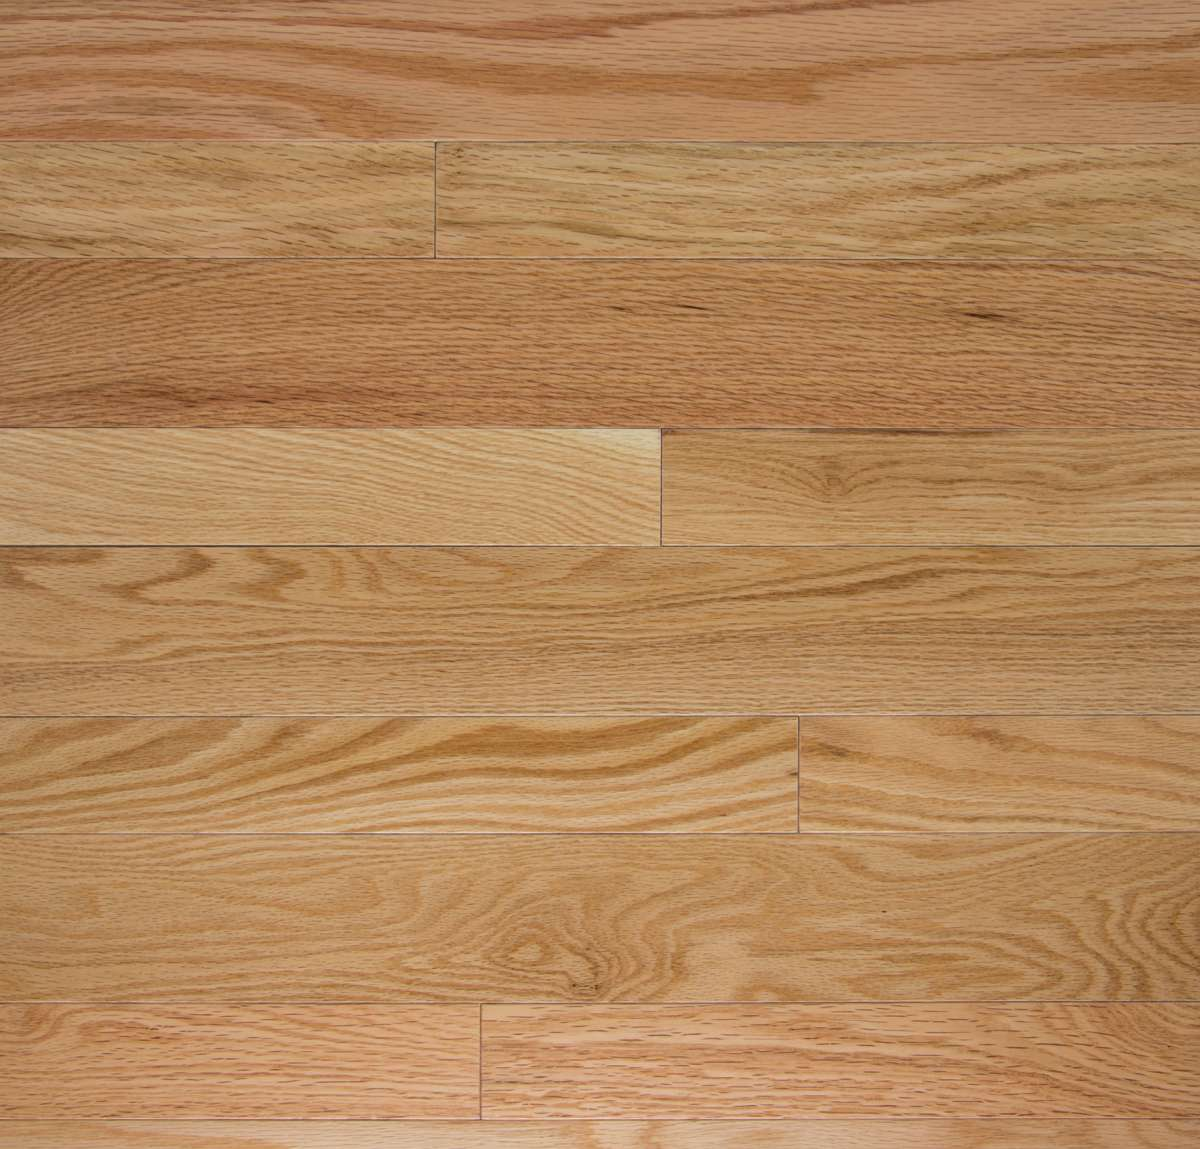 Somerset Homestyle Collection Solid Hardwood Flooring